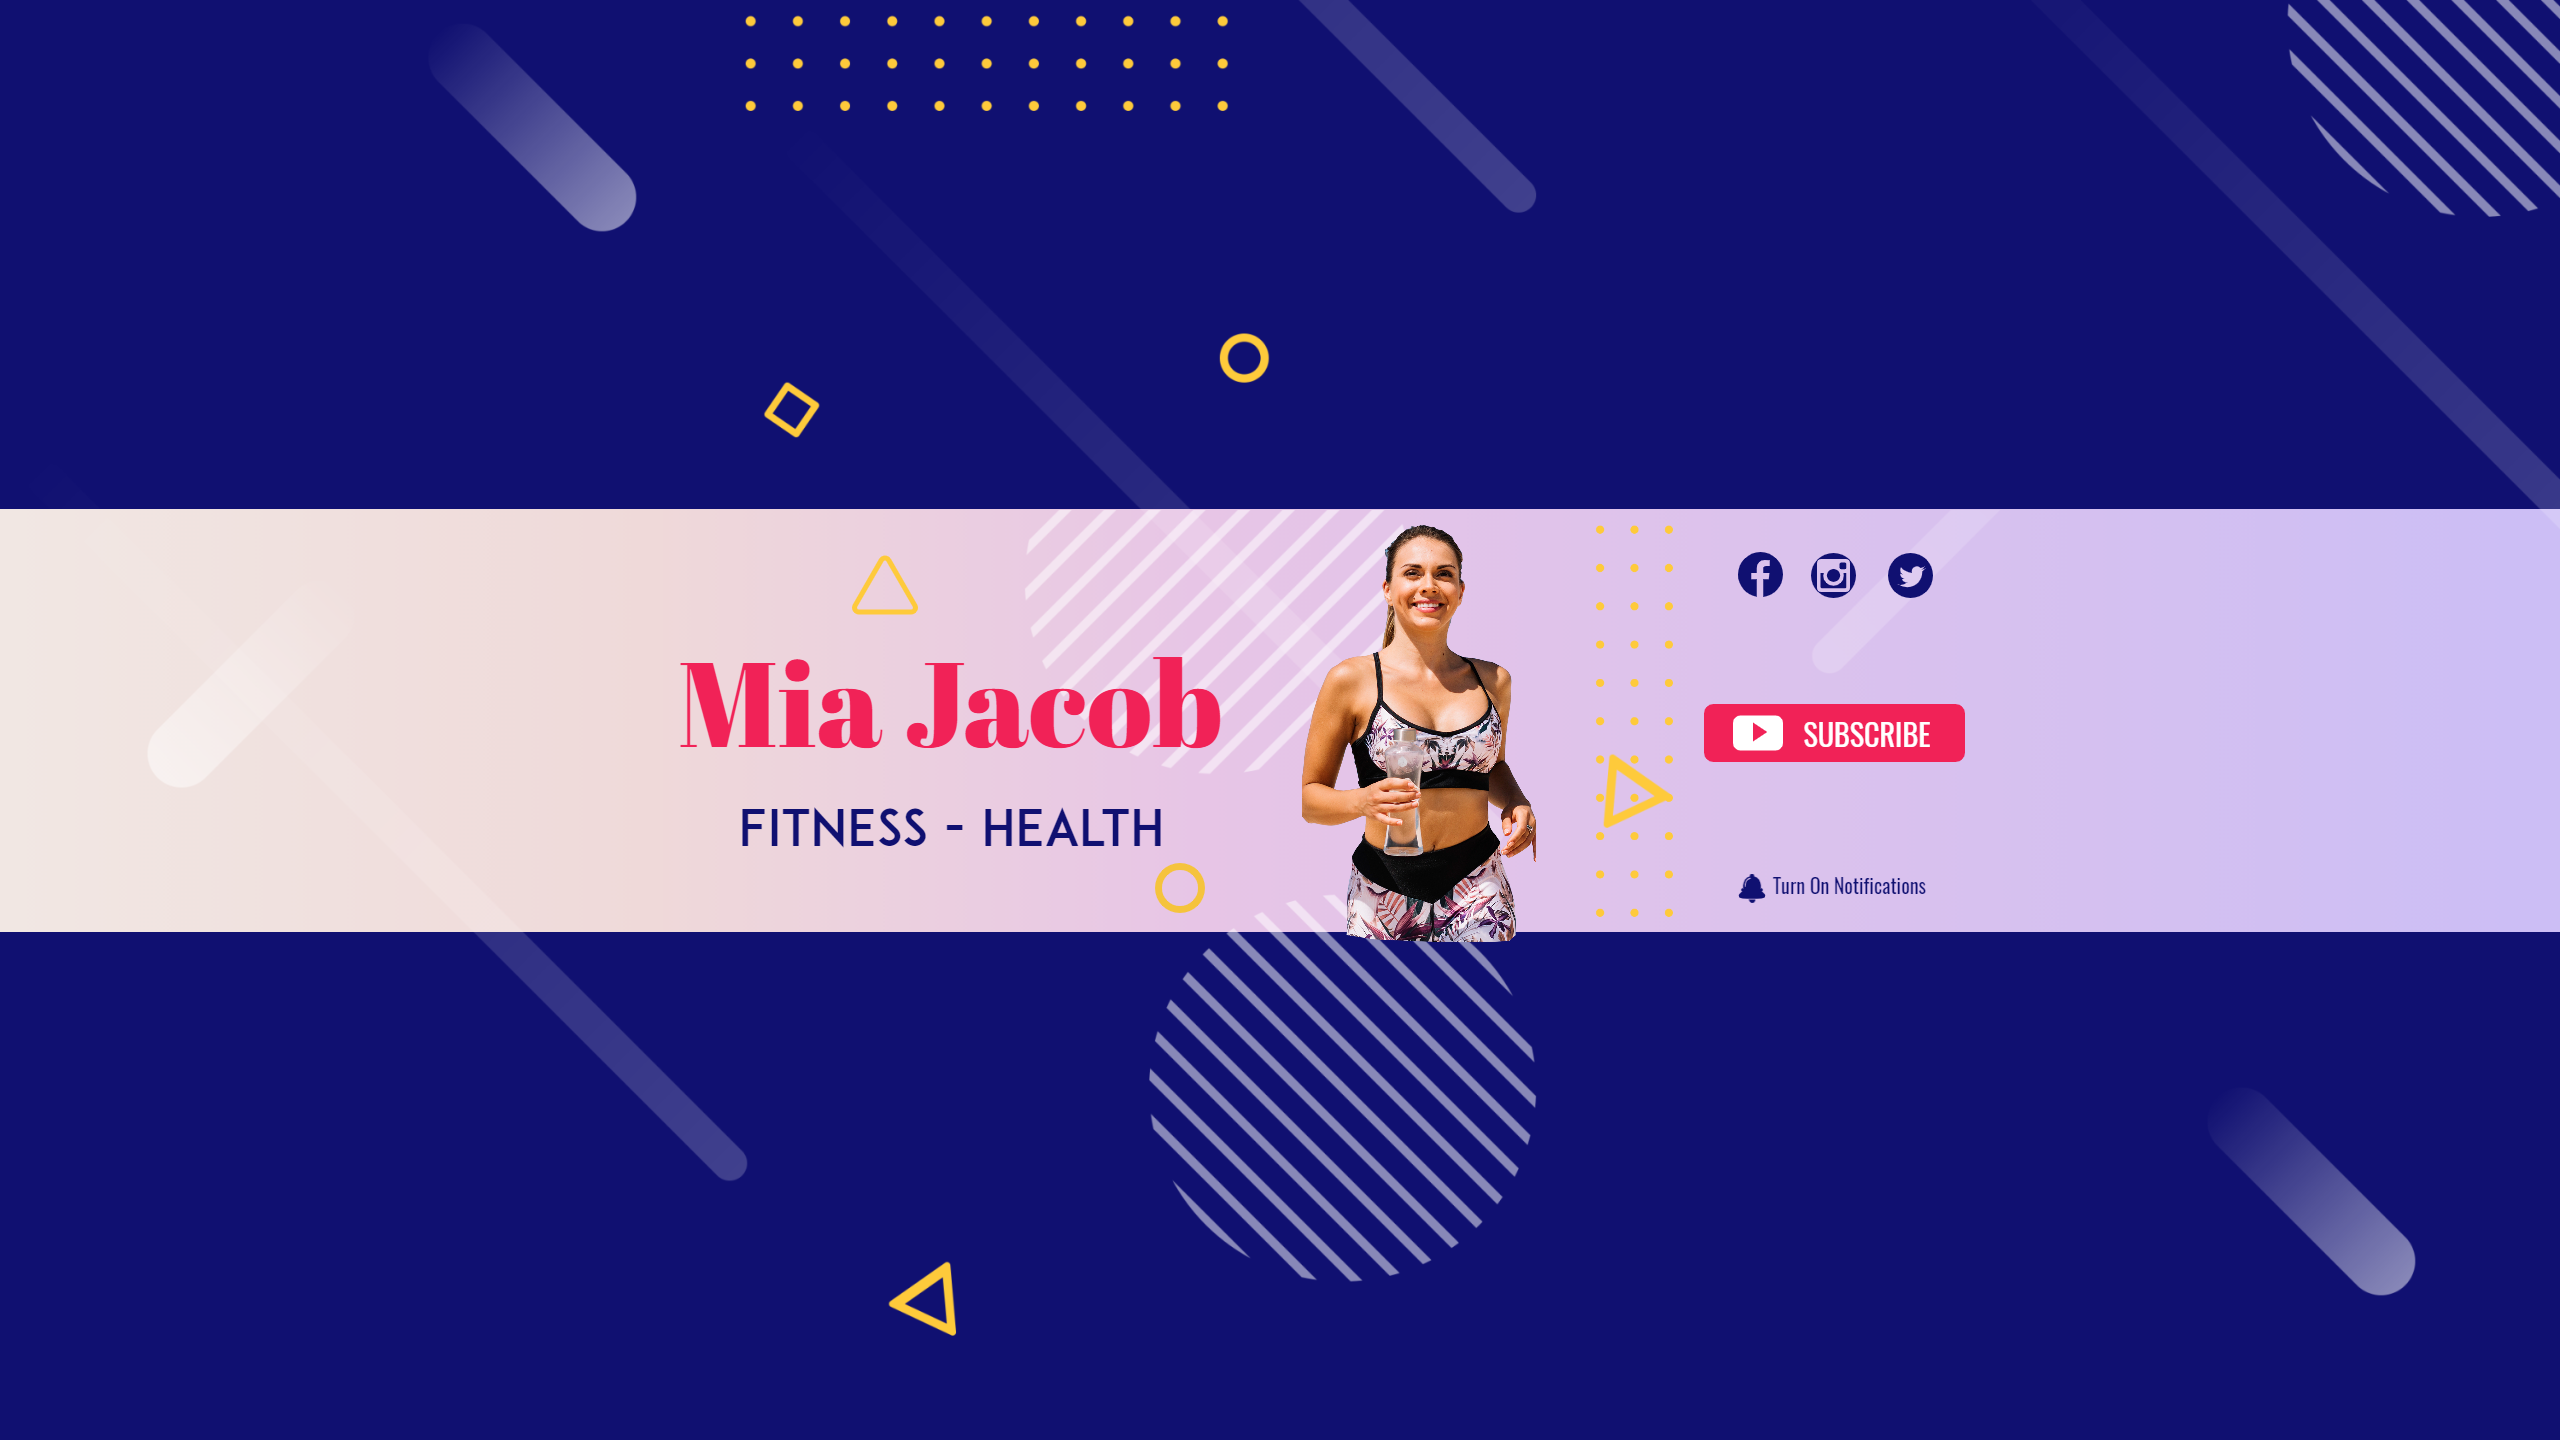 Youtube Lifestyle Fitness Health Design  Template